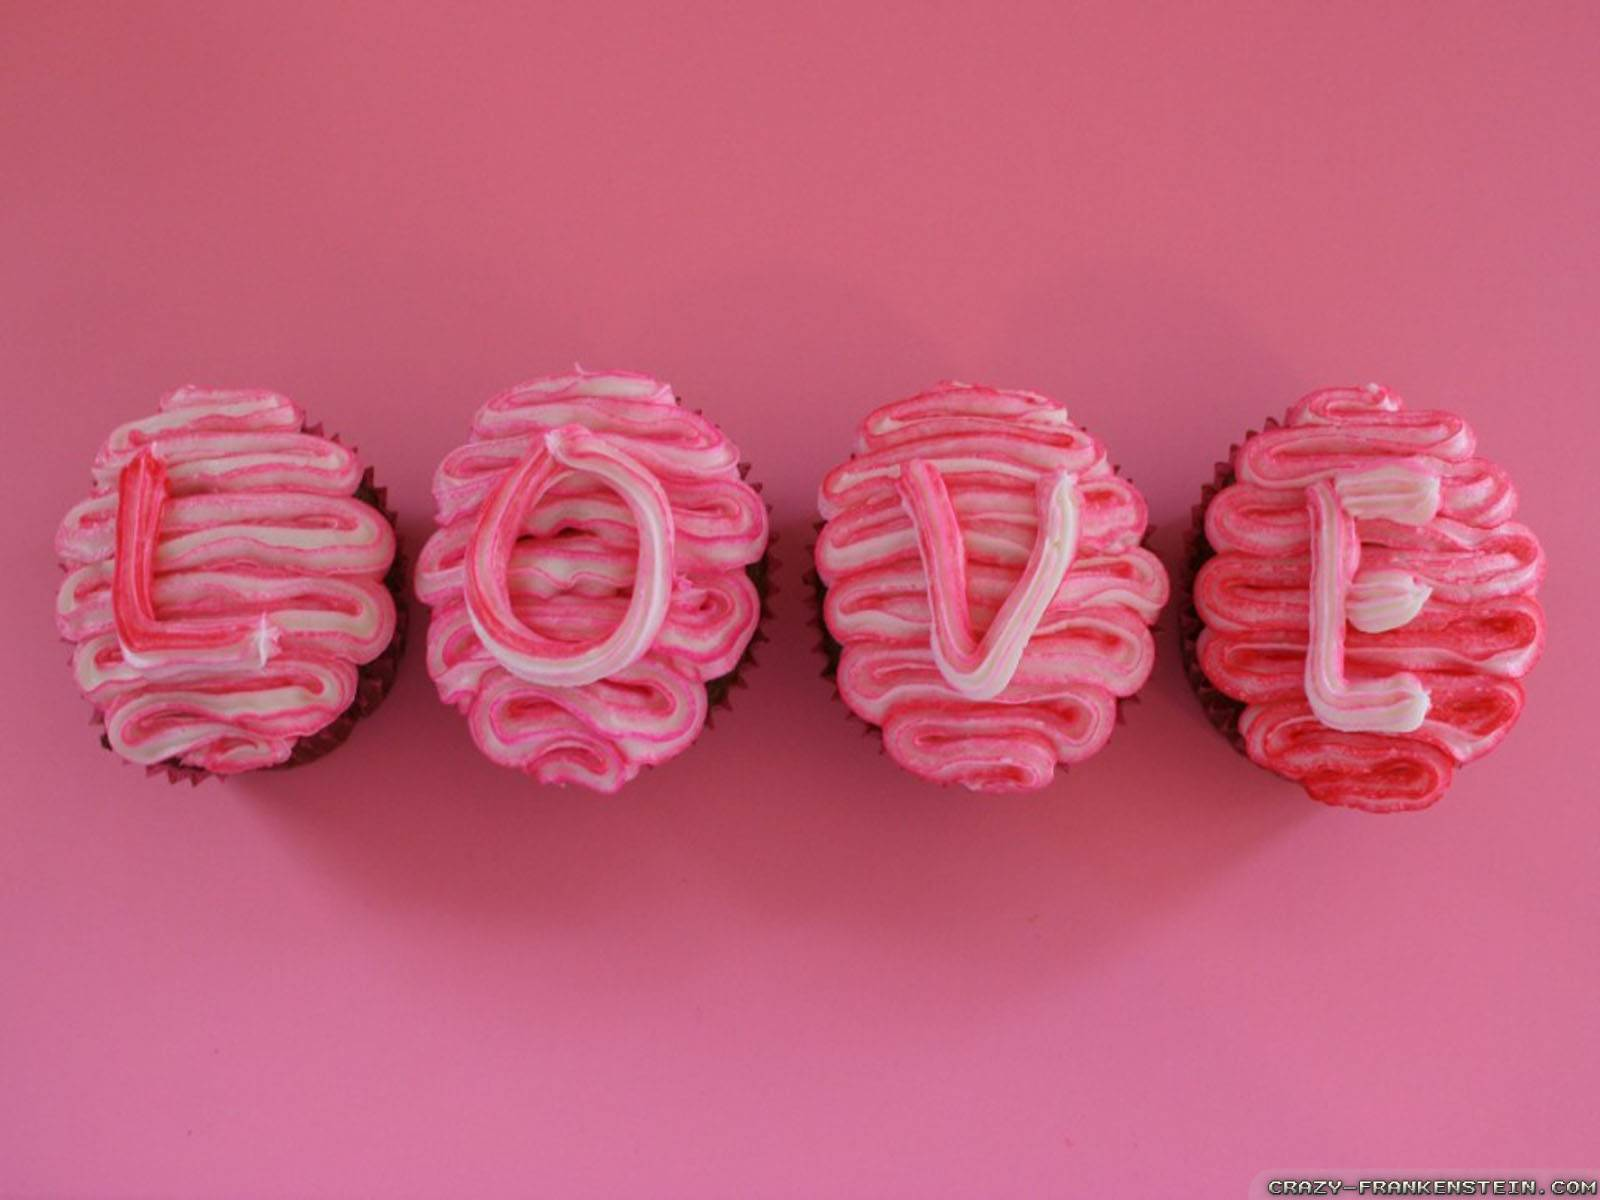 valentines day candy cupcakes wallpapers   Love Wallpaper 1600x1200